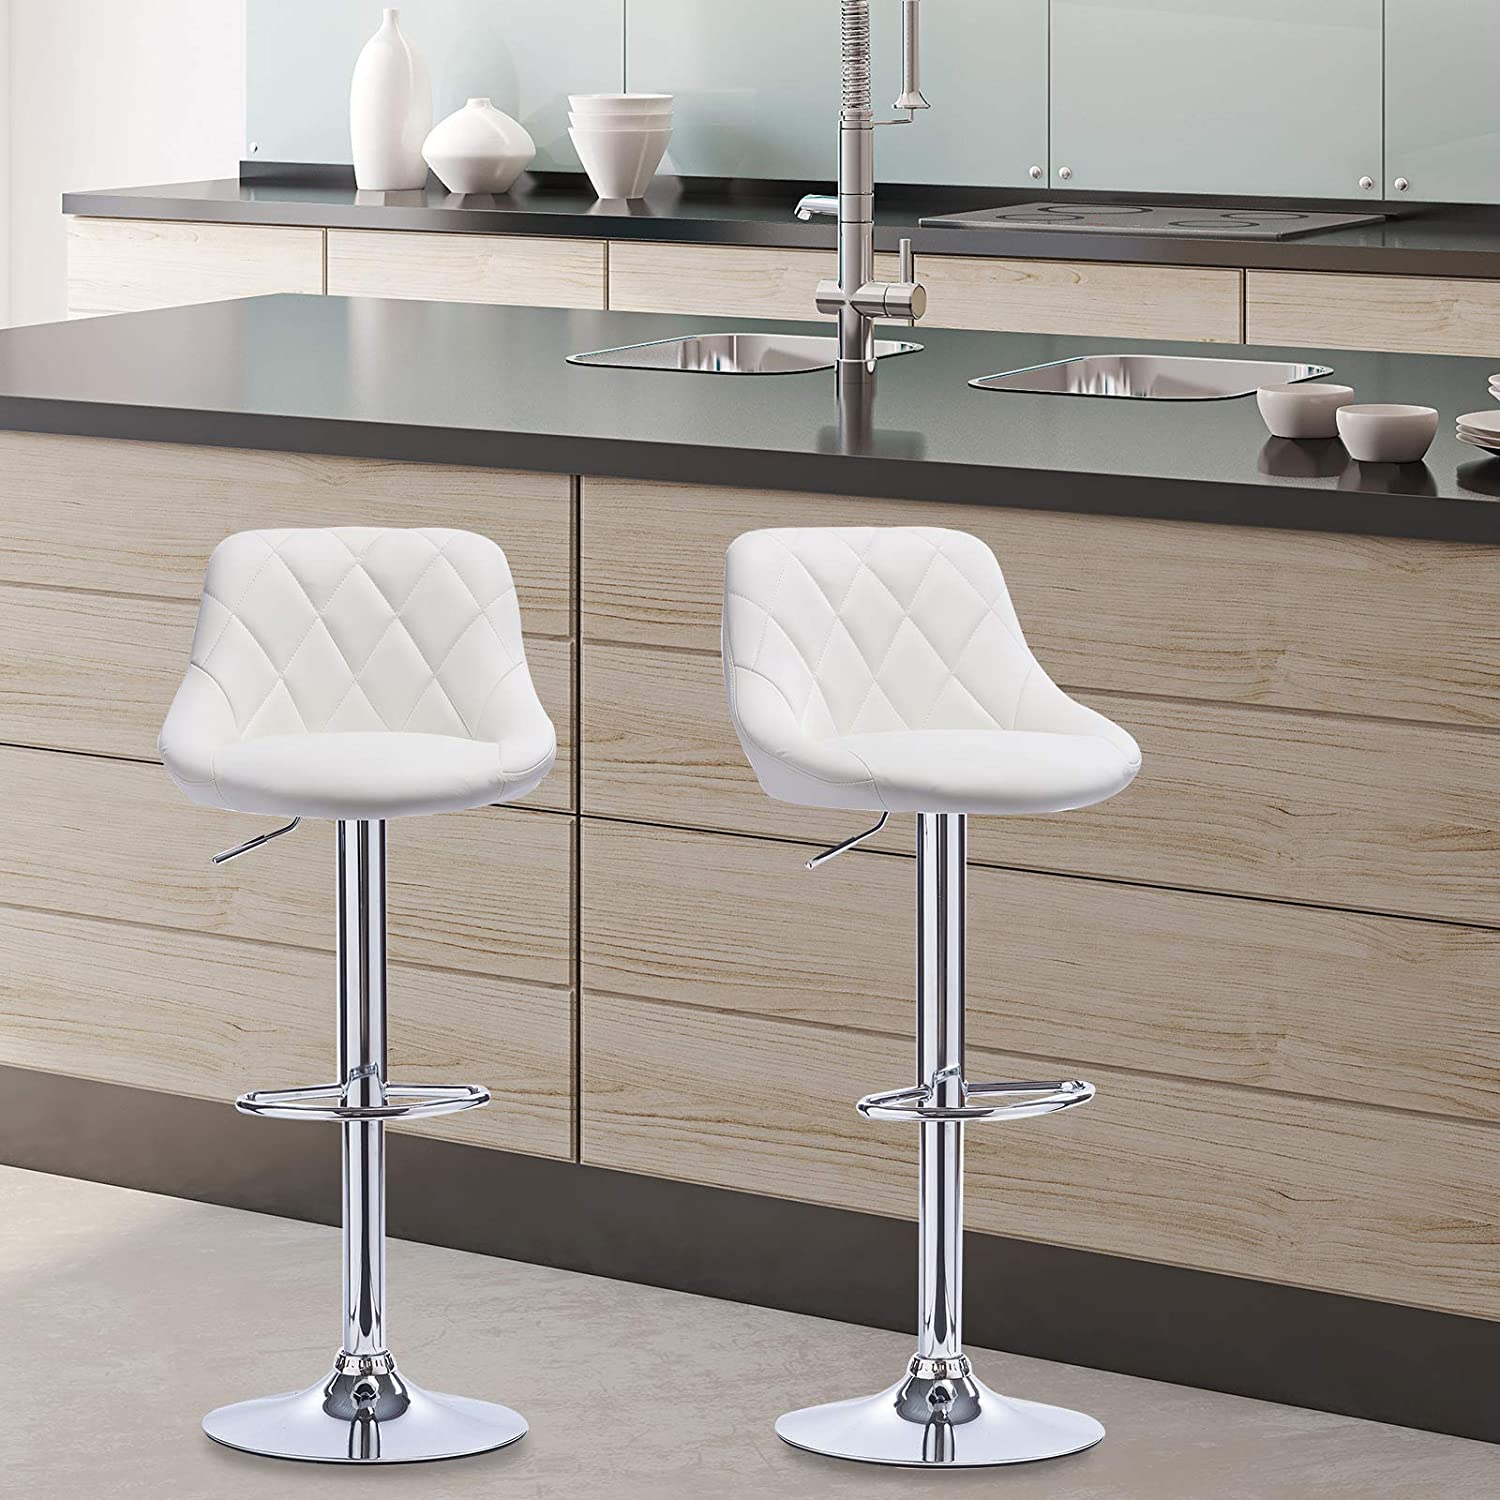 E-starain Set of 2 Bar Stools with Backrest, Faux Leather, Swivel BarStools Dining Stools for Breakfast Bar, Kitchen,Gas Lift Adjustable Seat height:60 to 82cm cream White